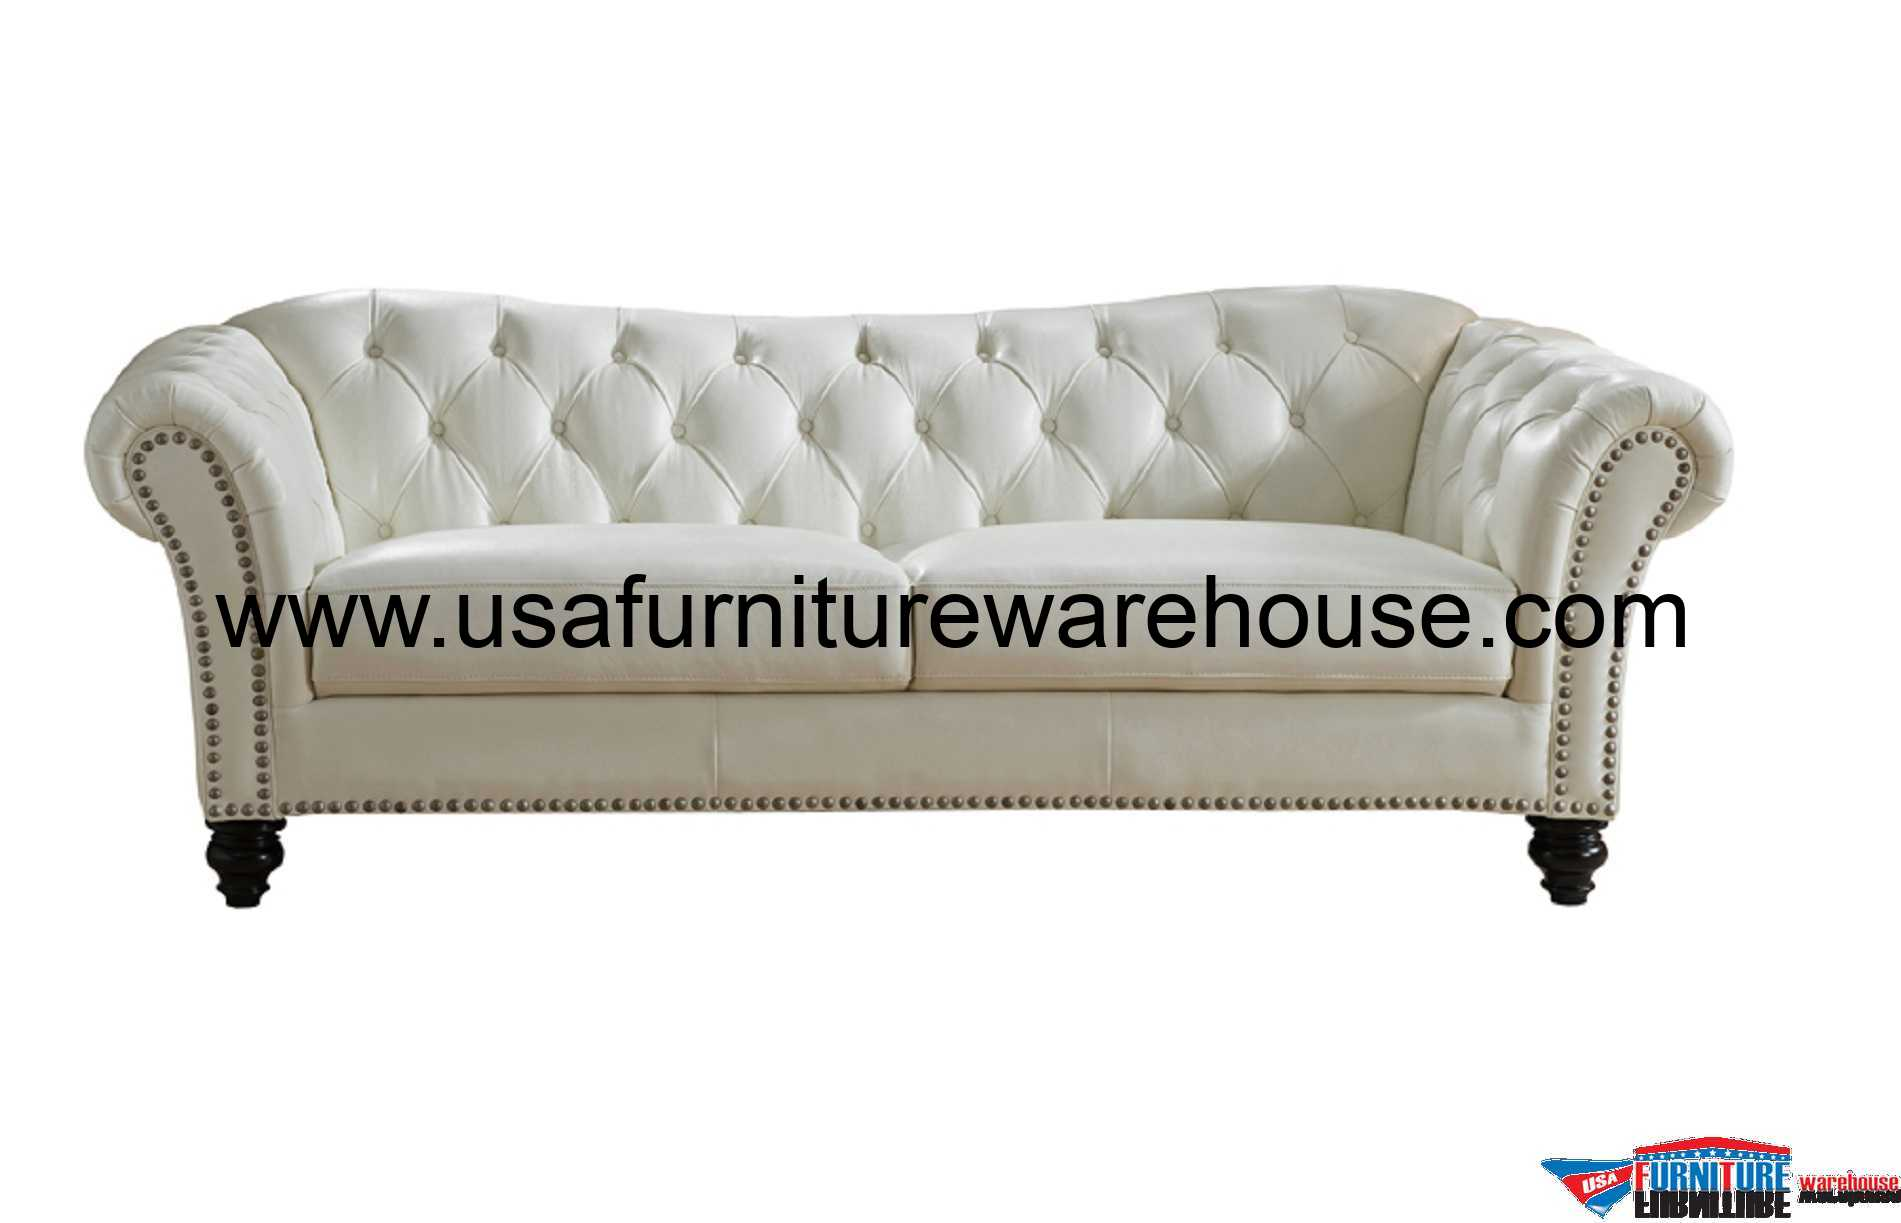 leathers sofa quality beds perth mona full top grain ivory white leather usa